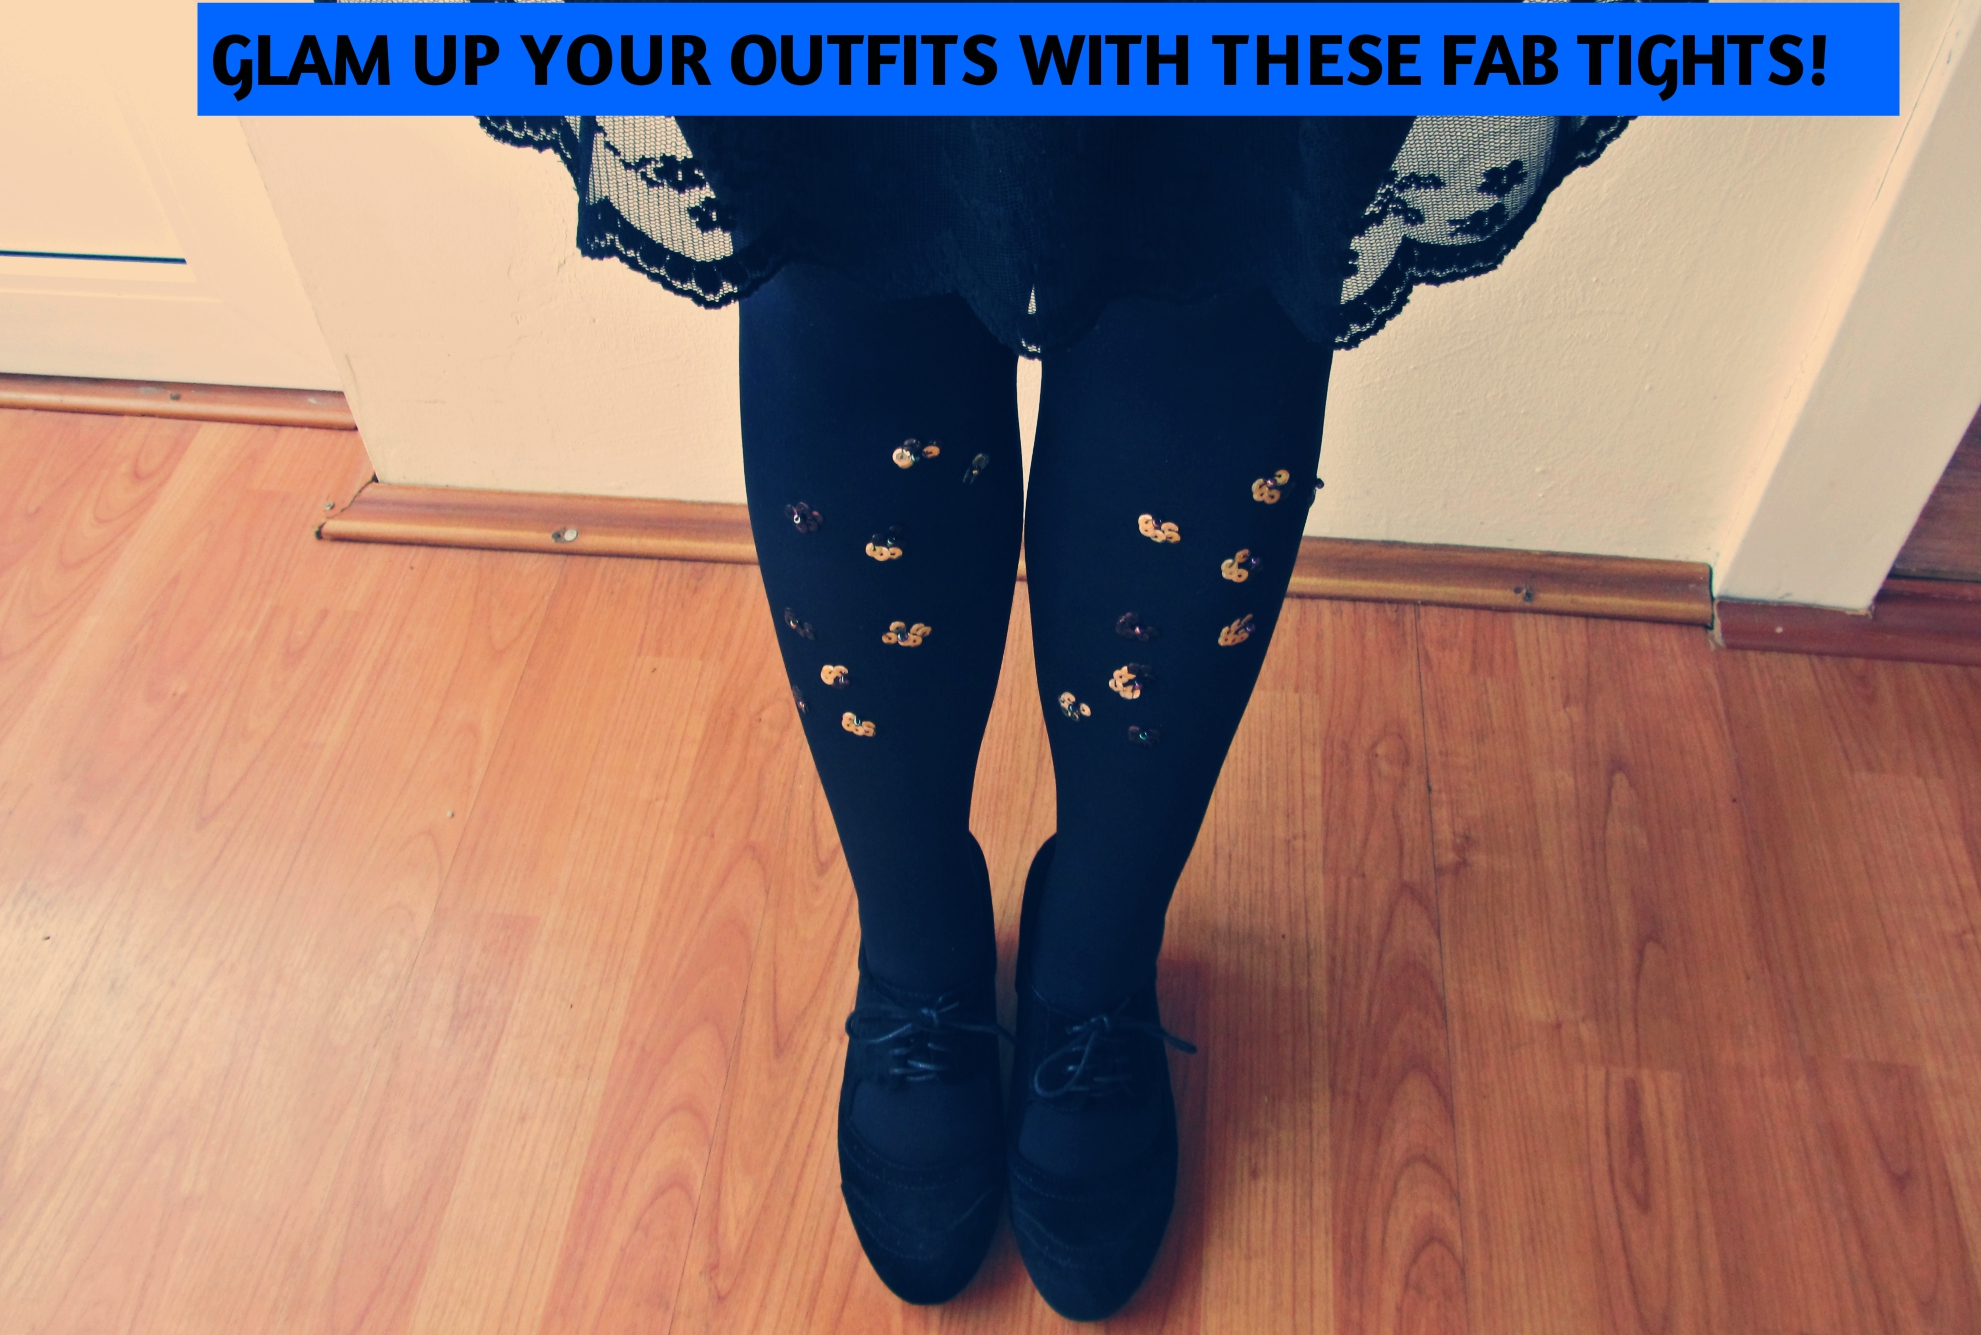 DIY TIGHTS WITH SEQUIN DECORATION